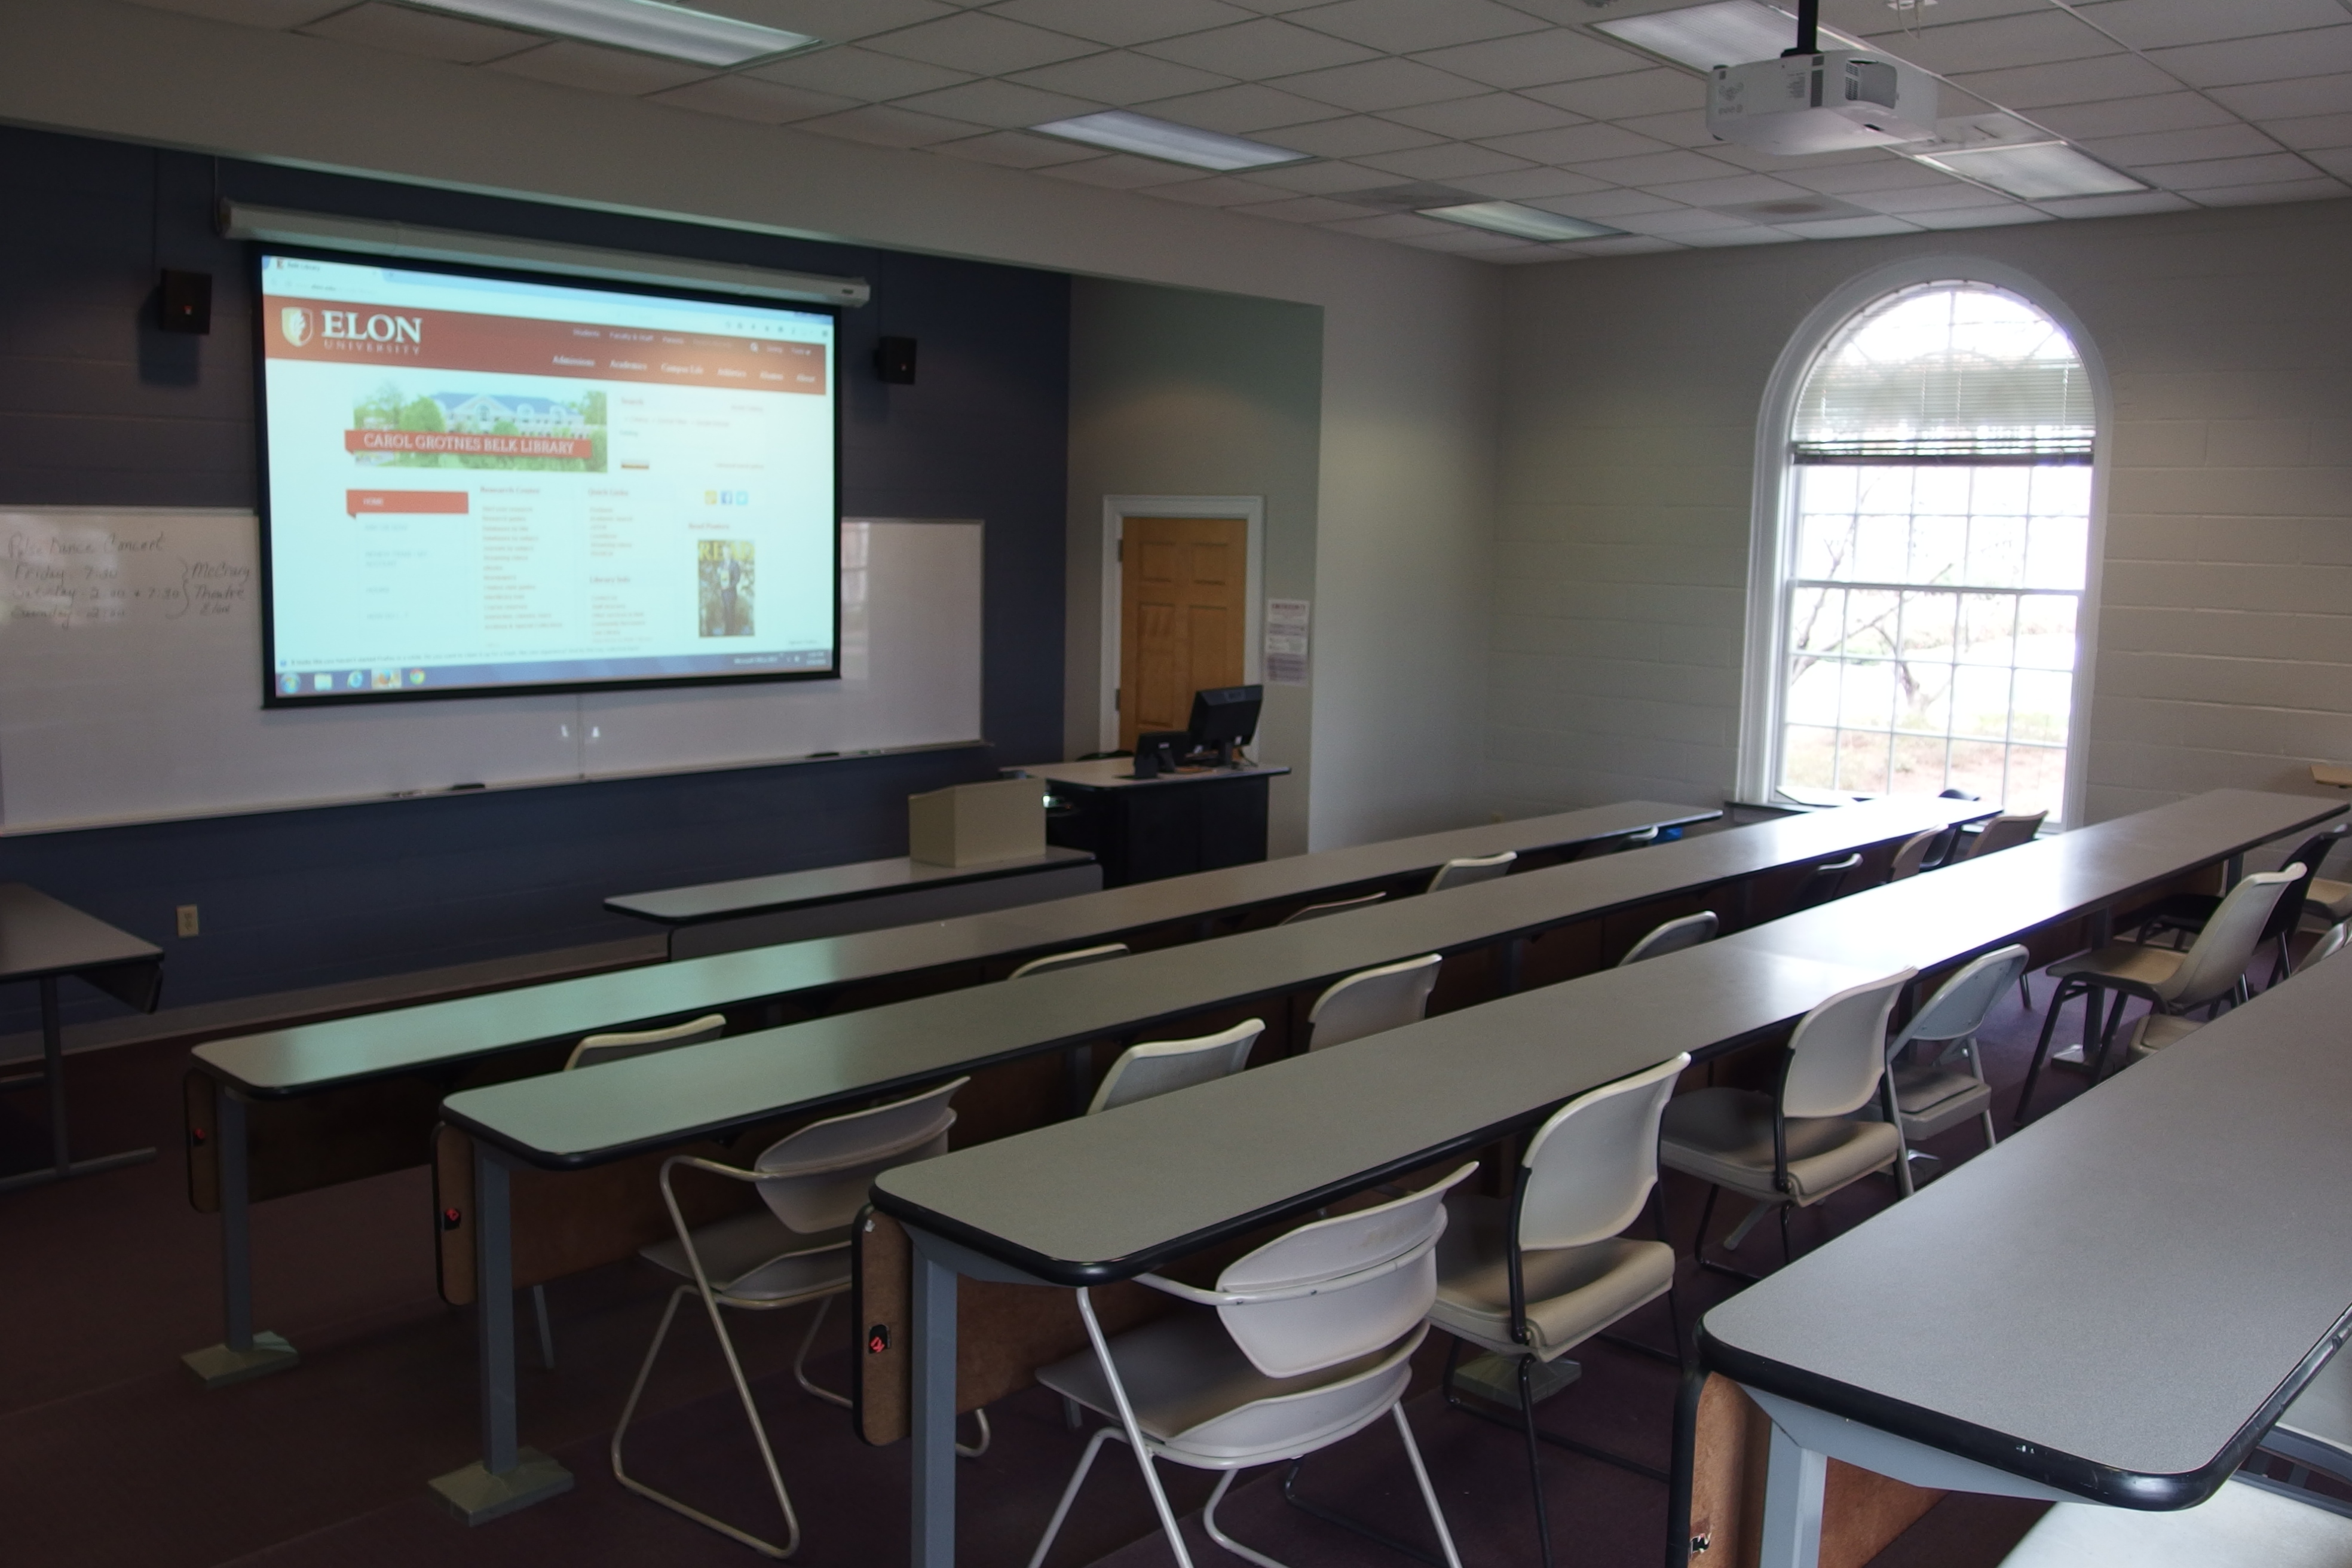 Photo of the classroom space taken from the back of the room looking towards the instructor's station